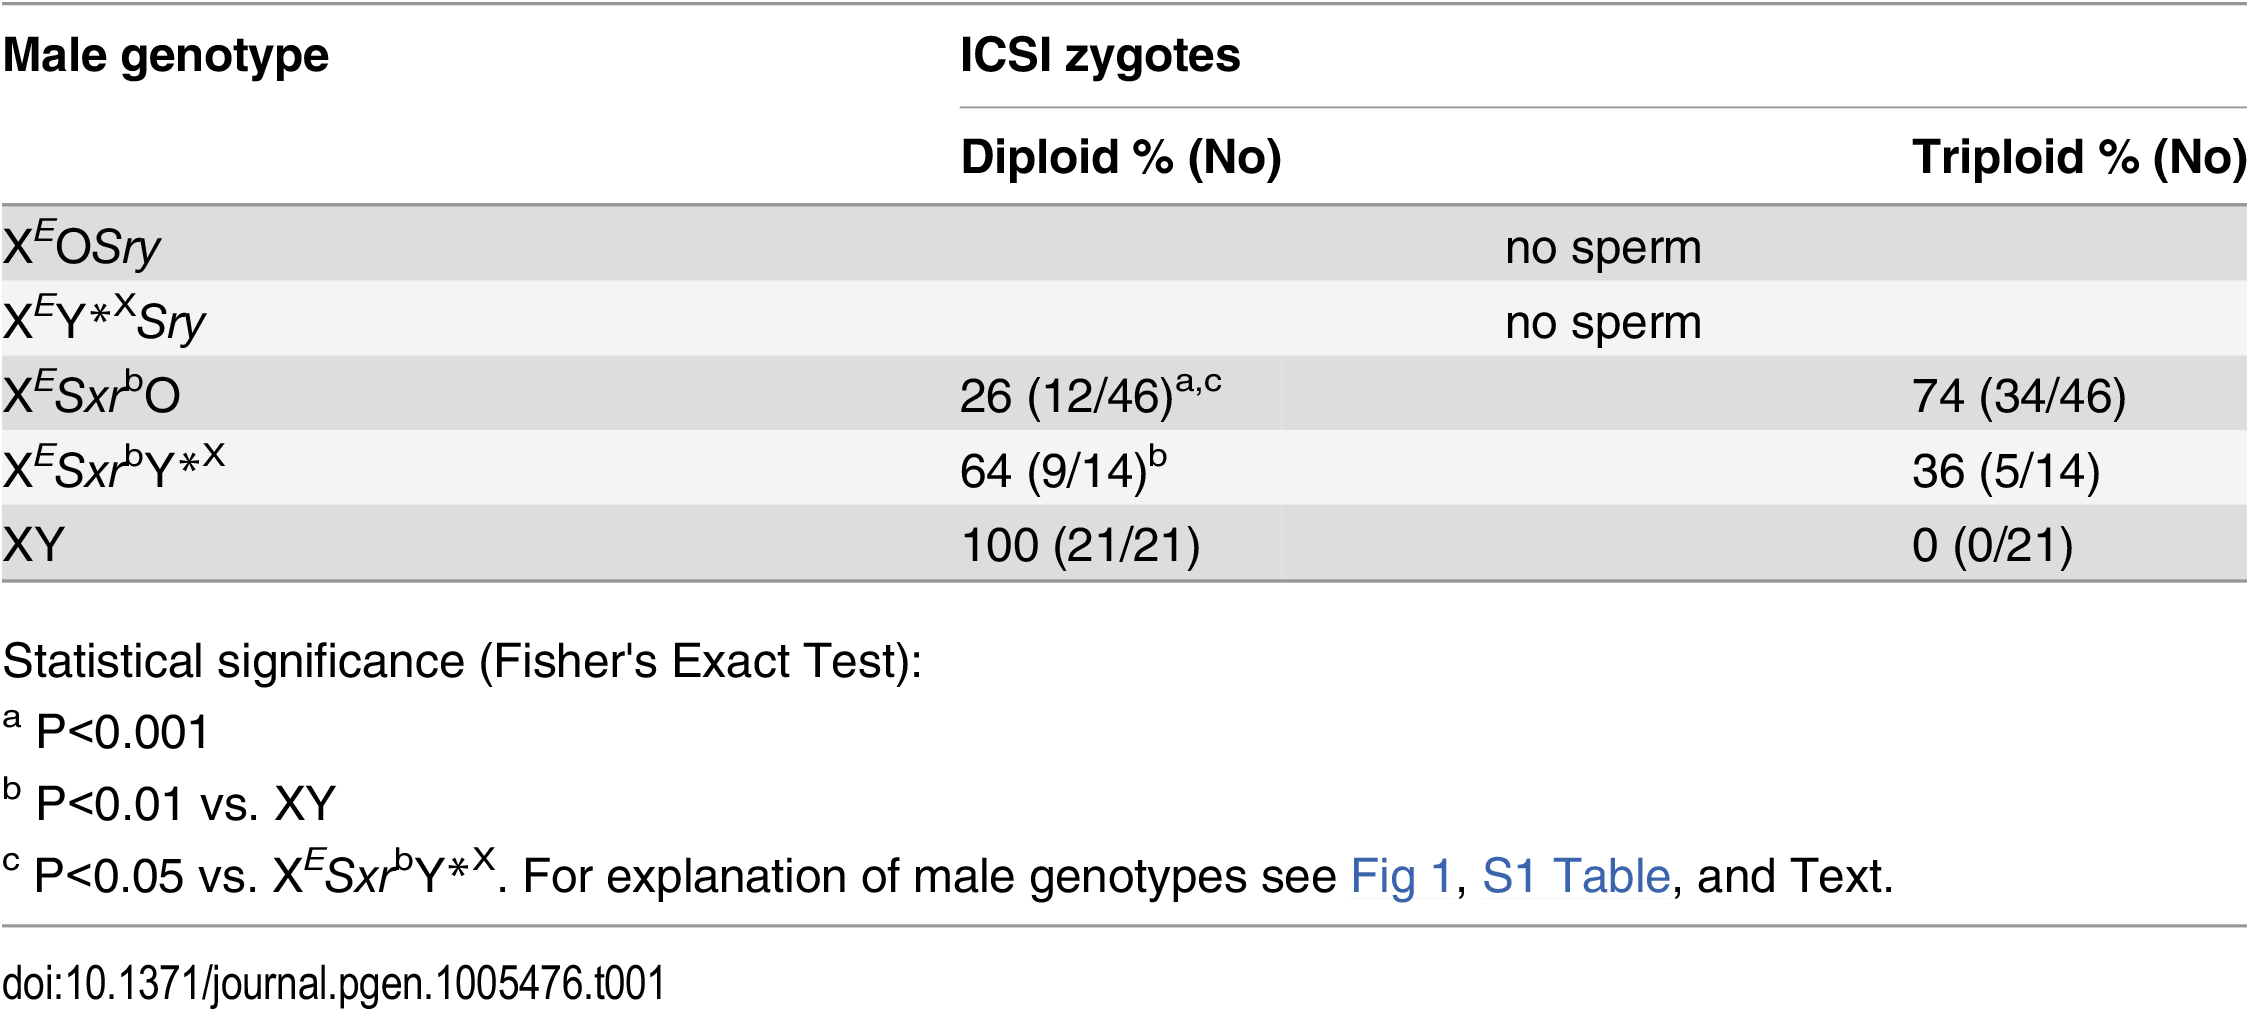 Zygotic chromosome analysis after ICSI with sperm from X<sup><i>E</i></sup><i>Sxr</i><sup>b</sup>O and X<sup><i>E</i></sup><i>Sxr</i><sup><i>b</i></sup>Y*<sup>X</sup> males.